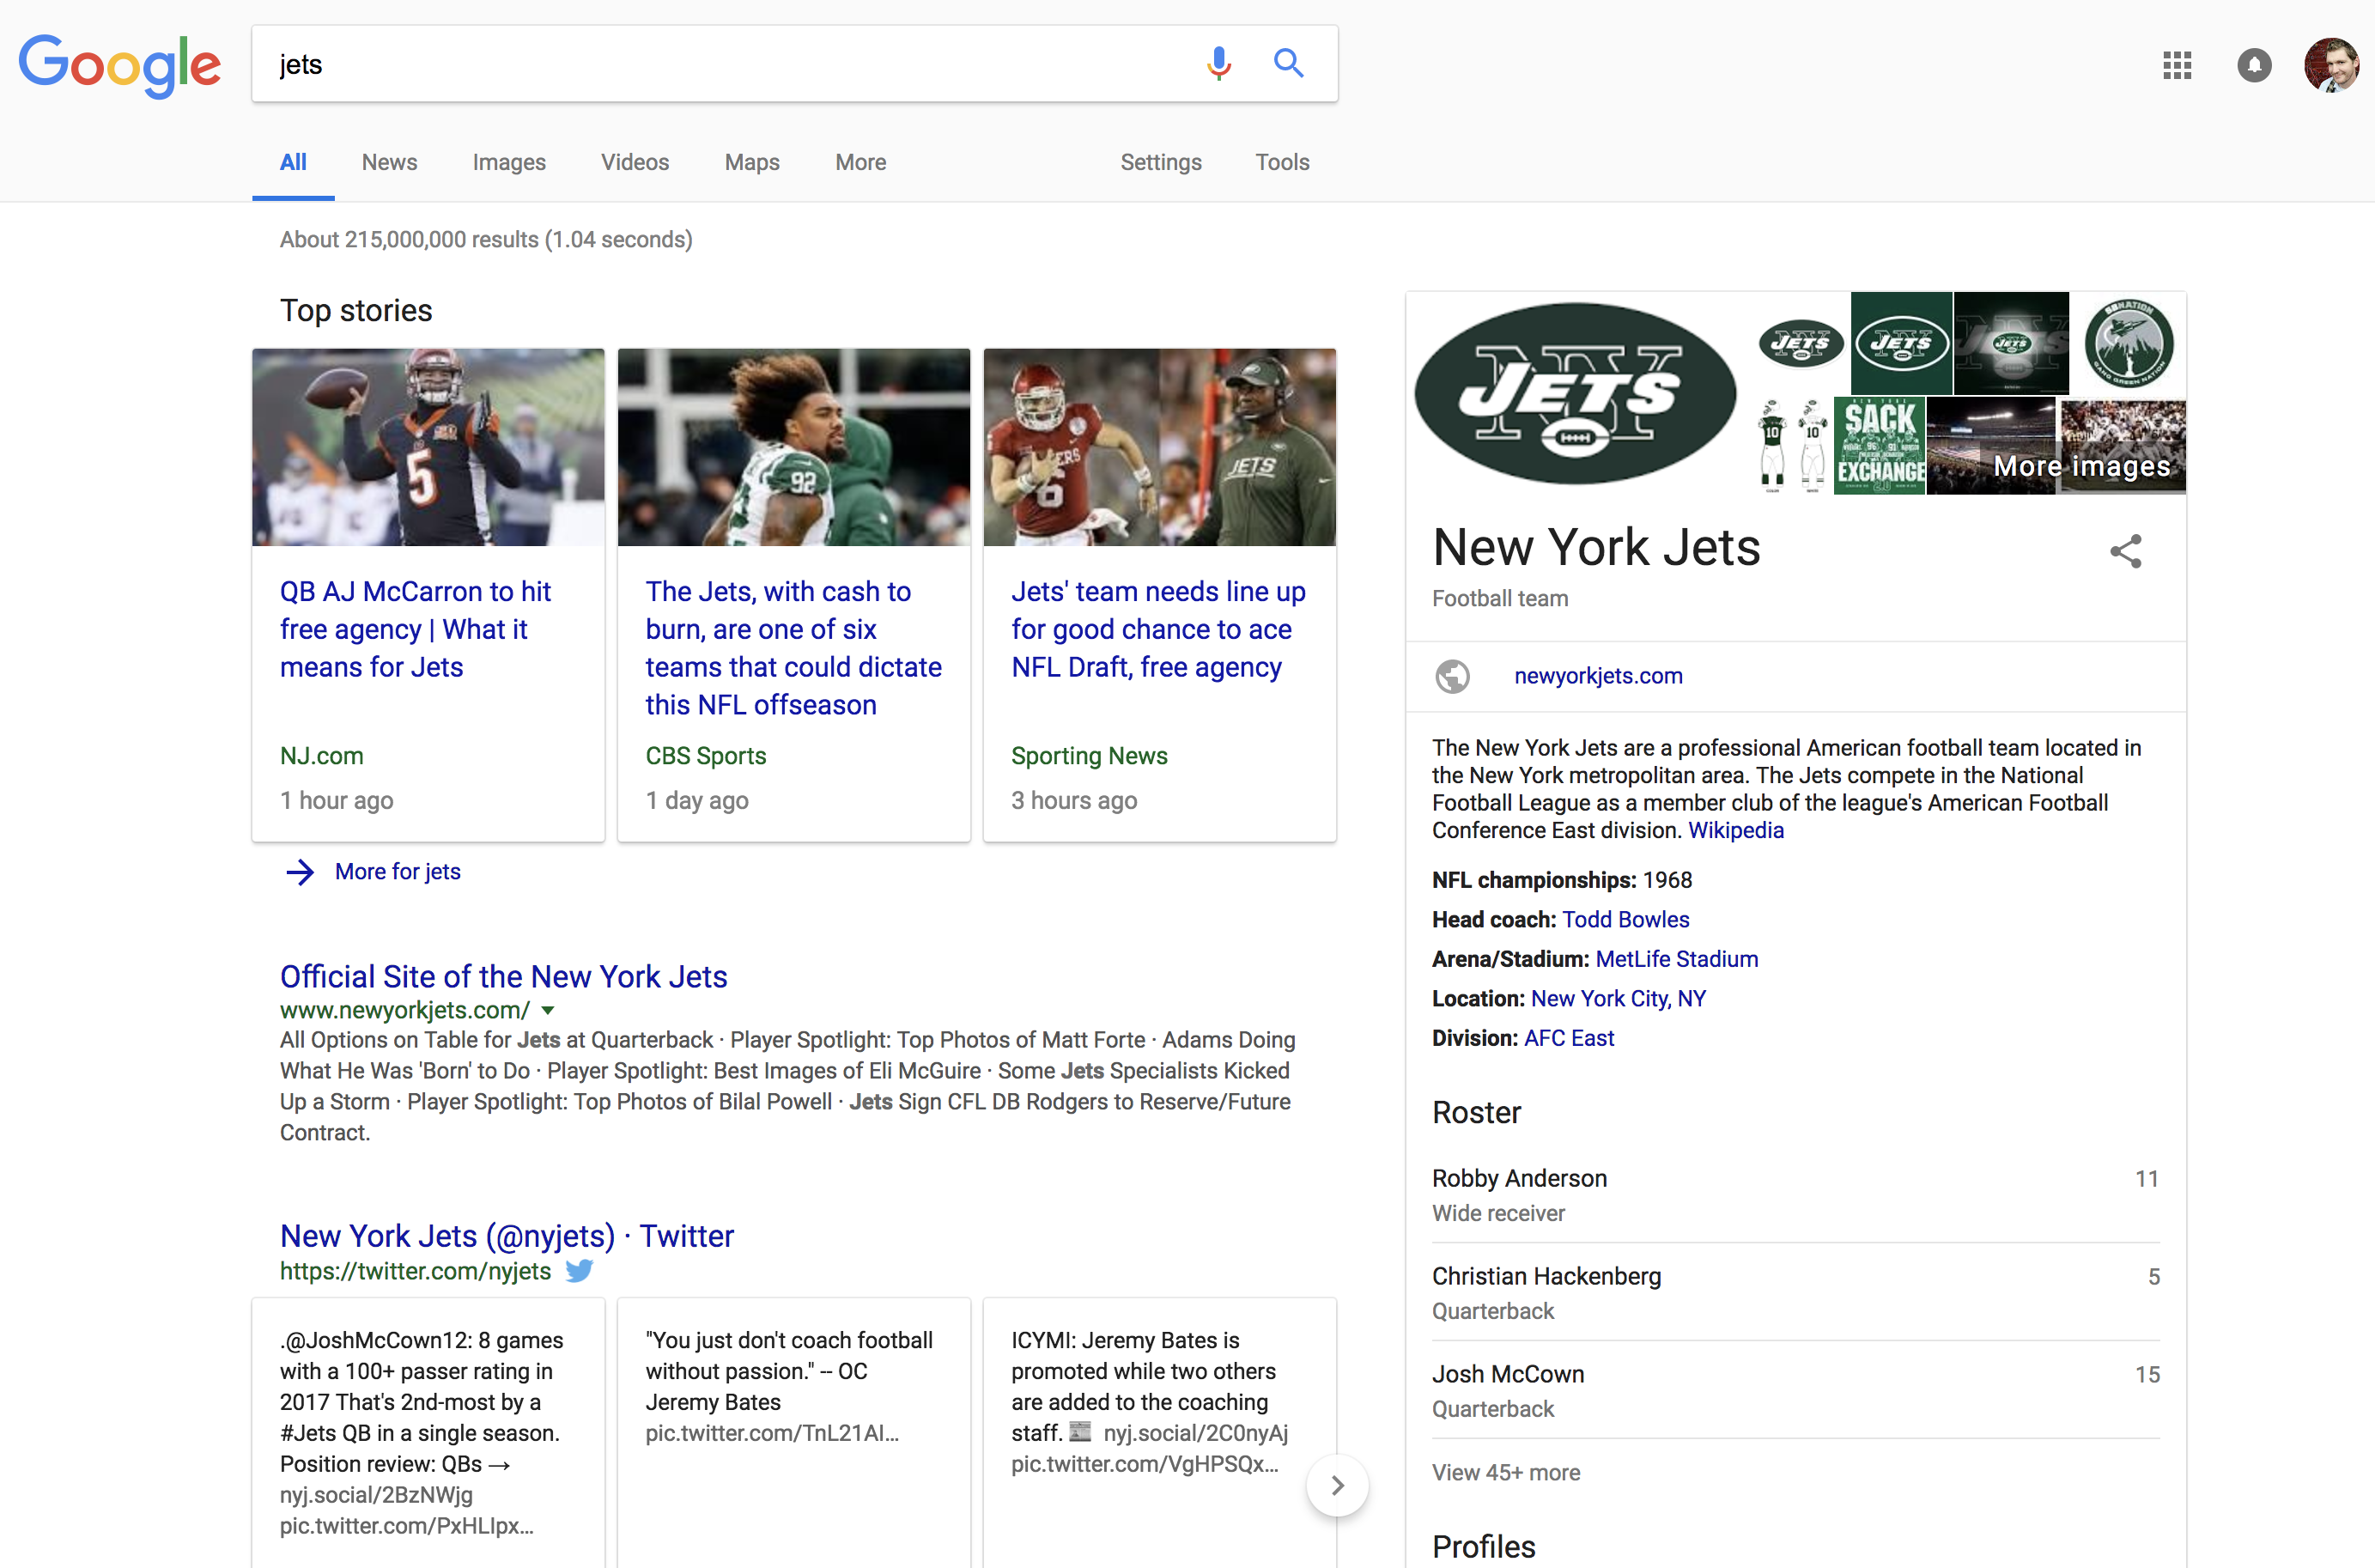 jets search query in google